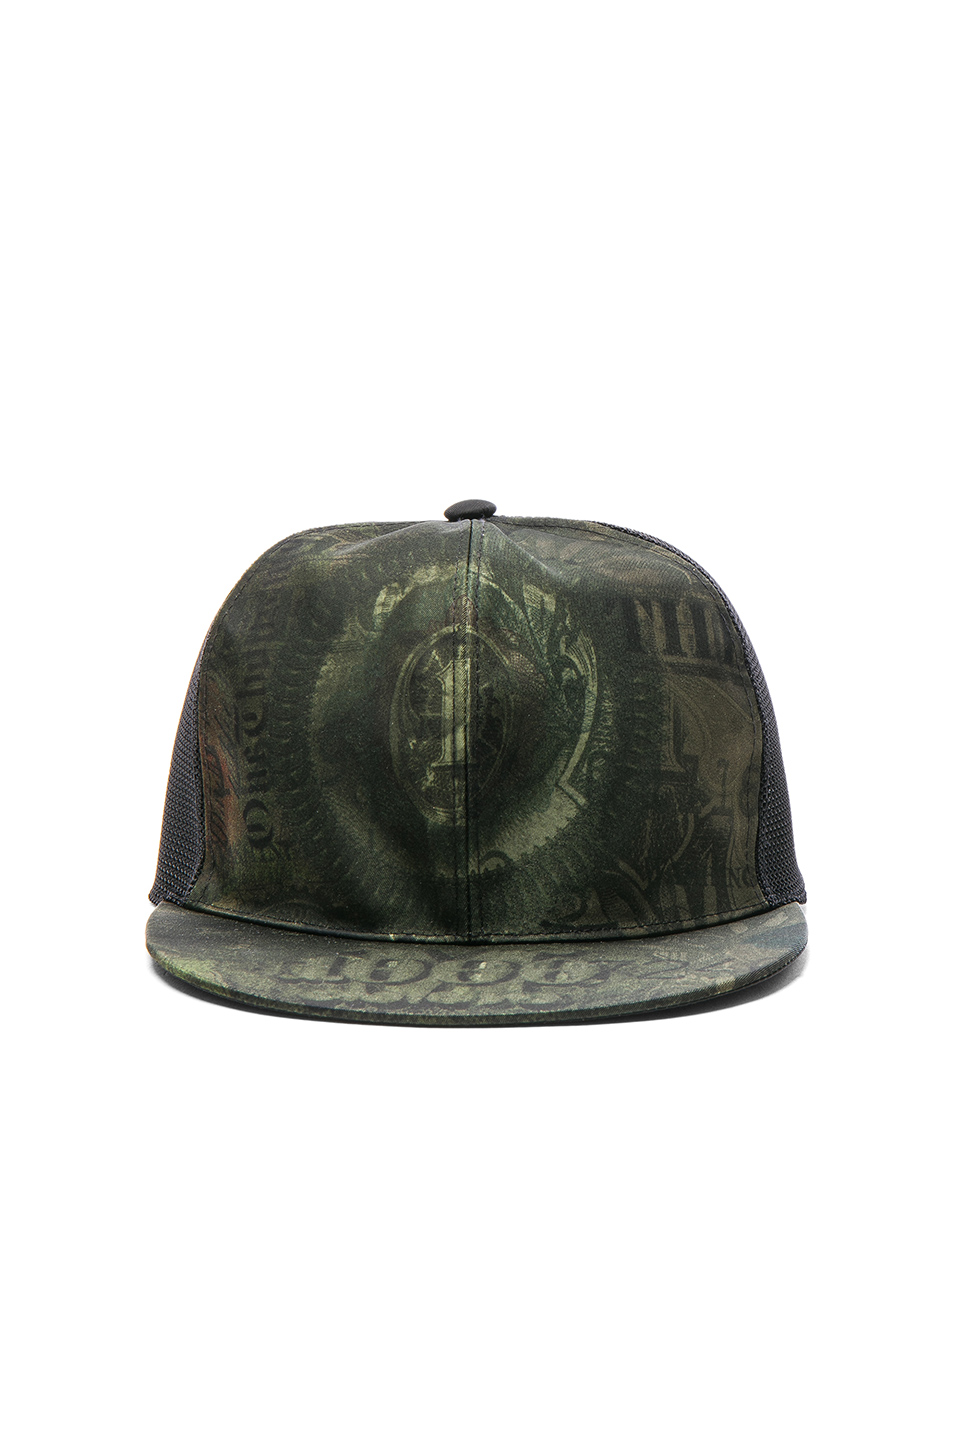 Givenchy Cap in Green,Abstract